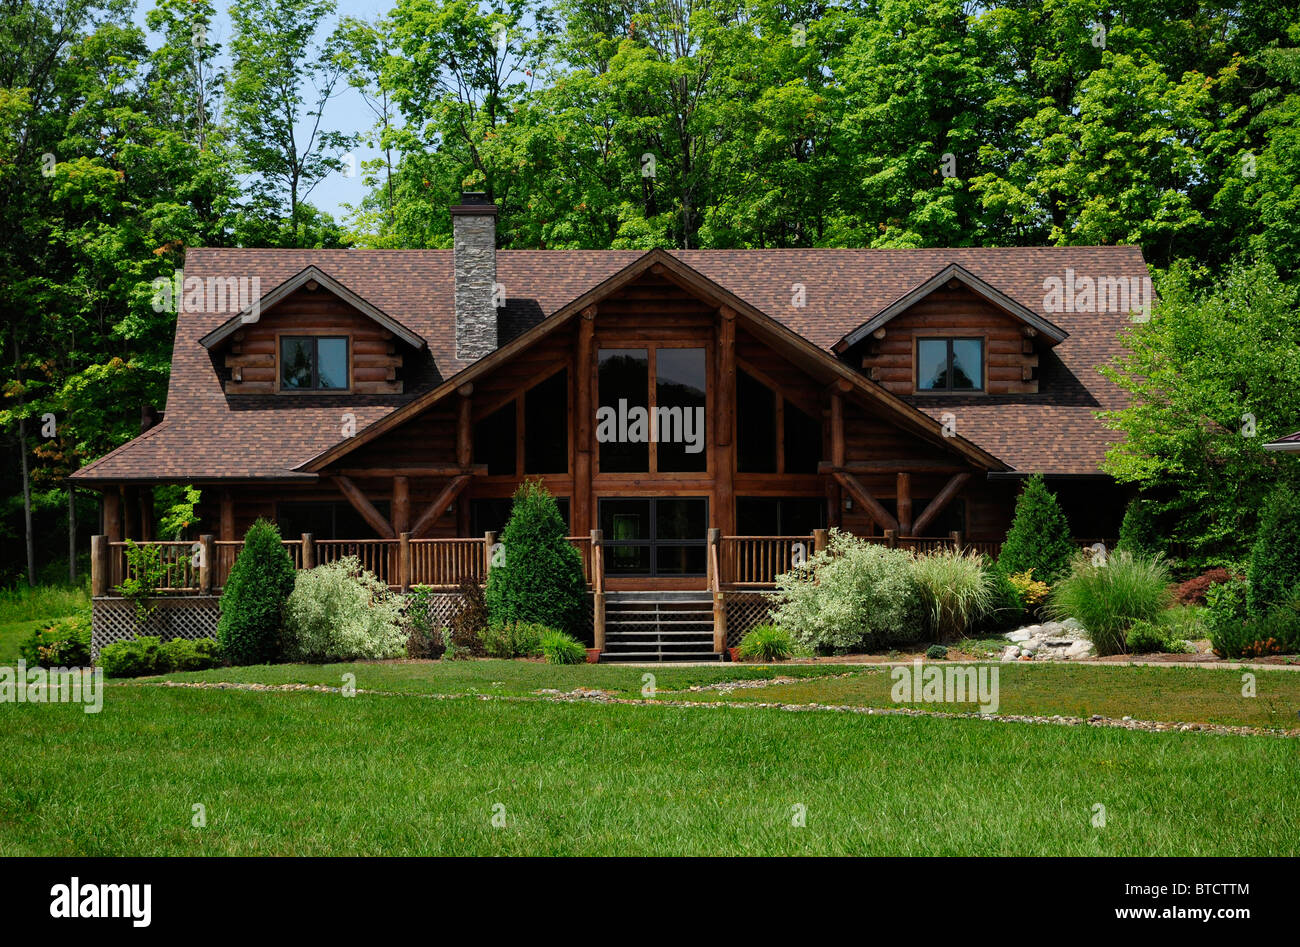 Large model log cabin in wooded area - Stock Image